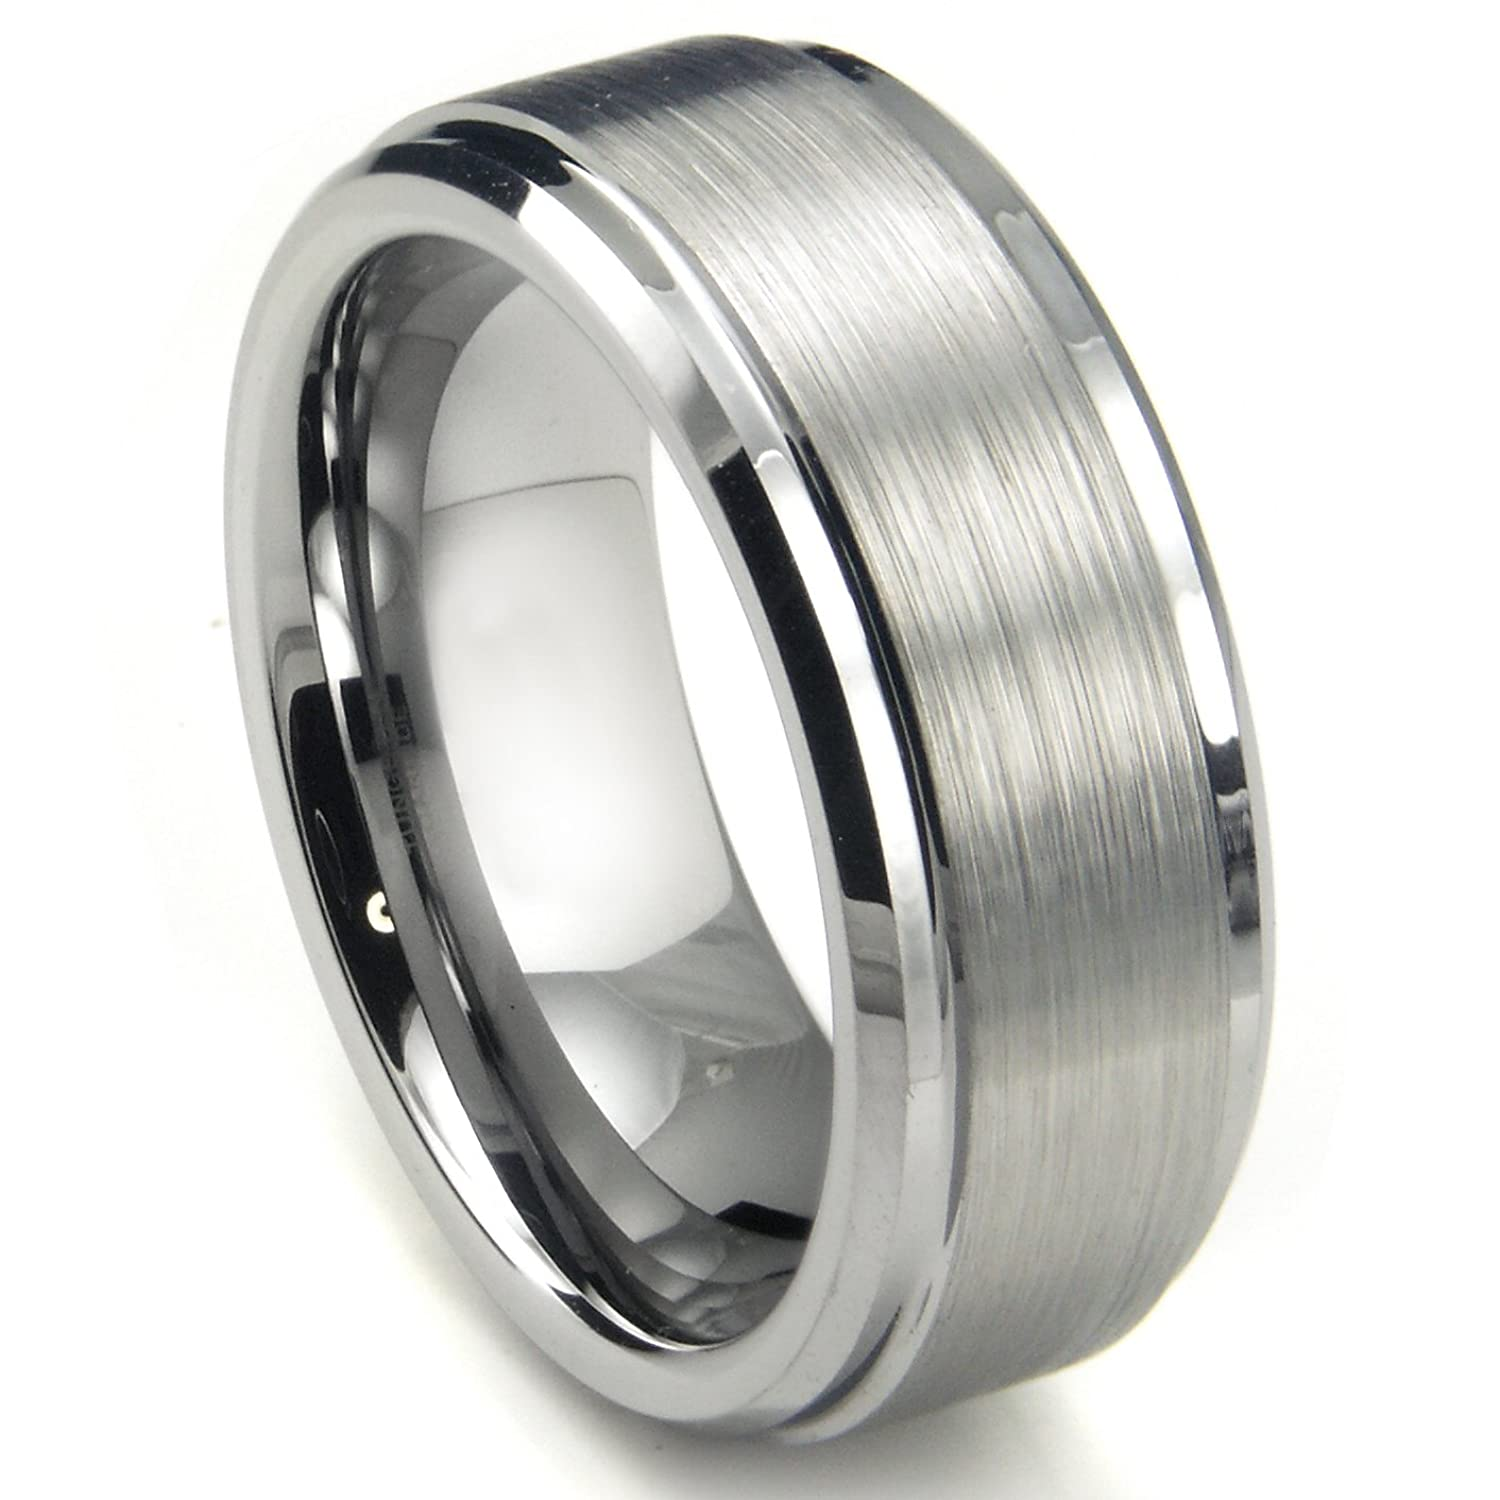 8MM High Polish Matte Finish Mens Tungsten Ring Wedding Band